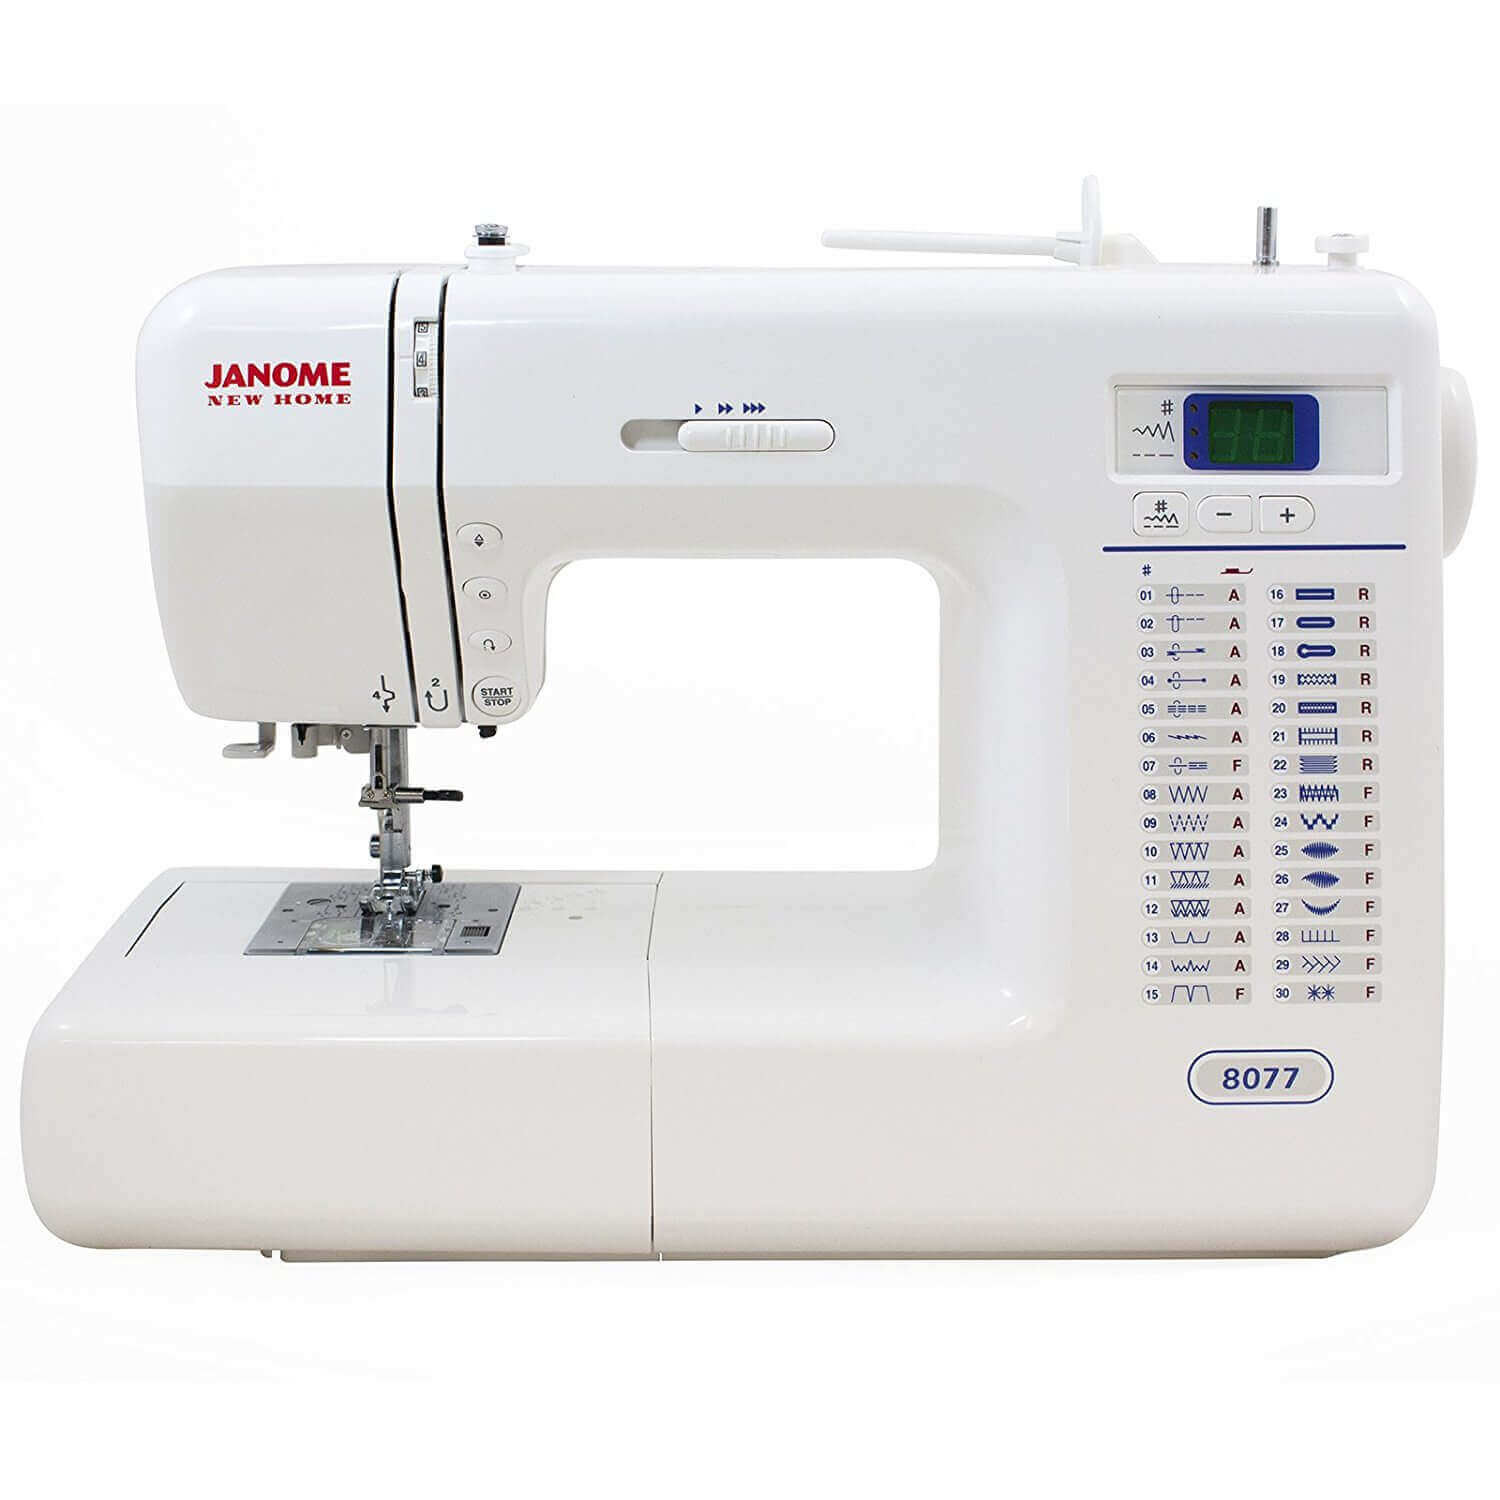 Sewing and Embroidery Machine Unique Best Sewing Machine March 2018 Buyer S Guide & Reviews Of Unique 48 Pics Sewing and Embroidery Machine